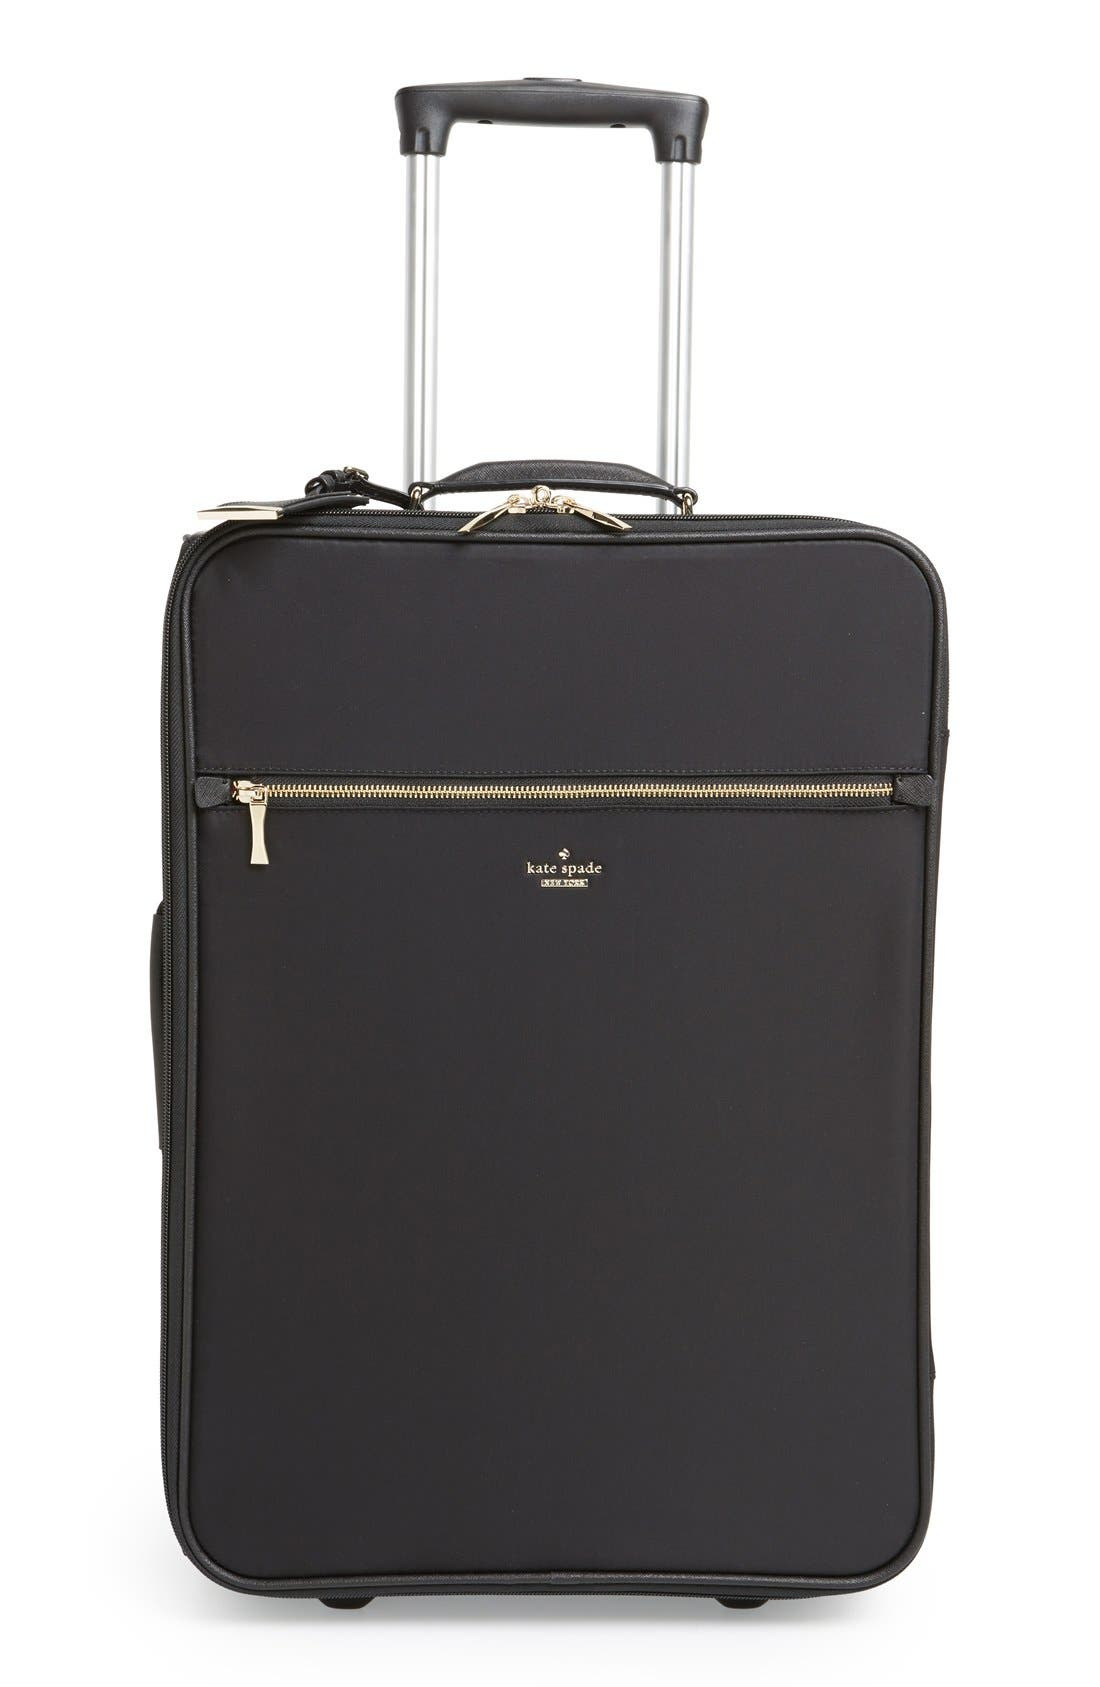 Alternate Image 1 Selected - kate spade new york 'classic' nylon international two-wheel carry-on suitcase (20 Inch)